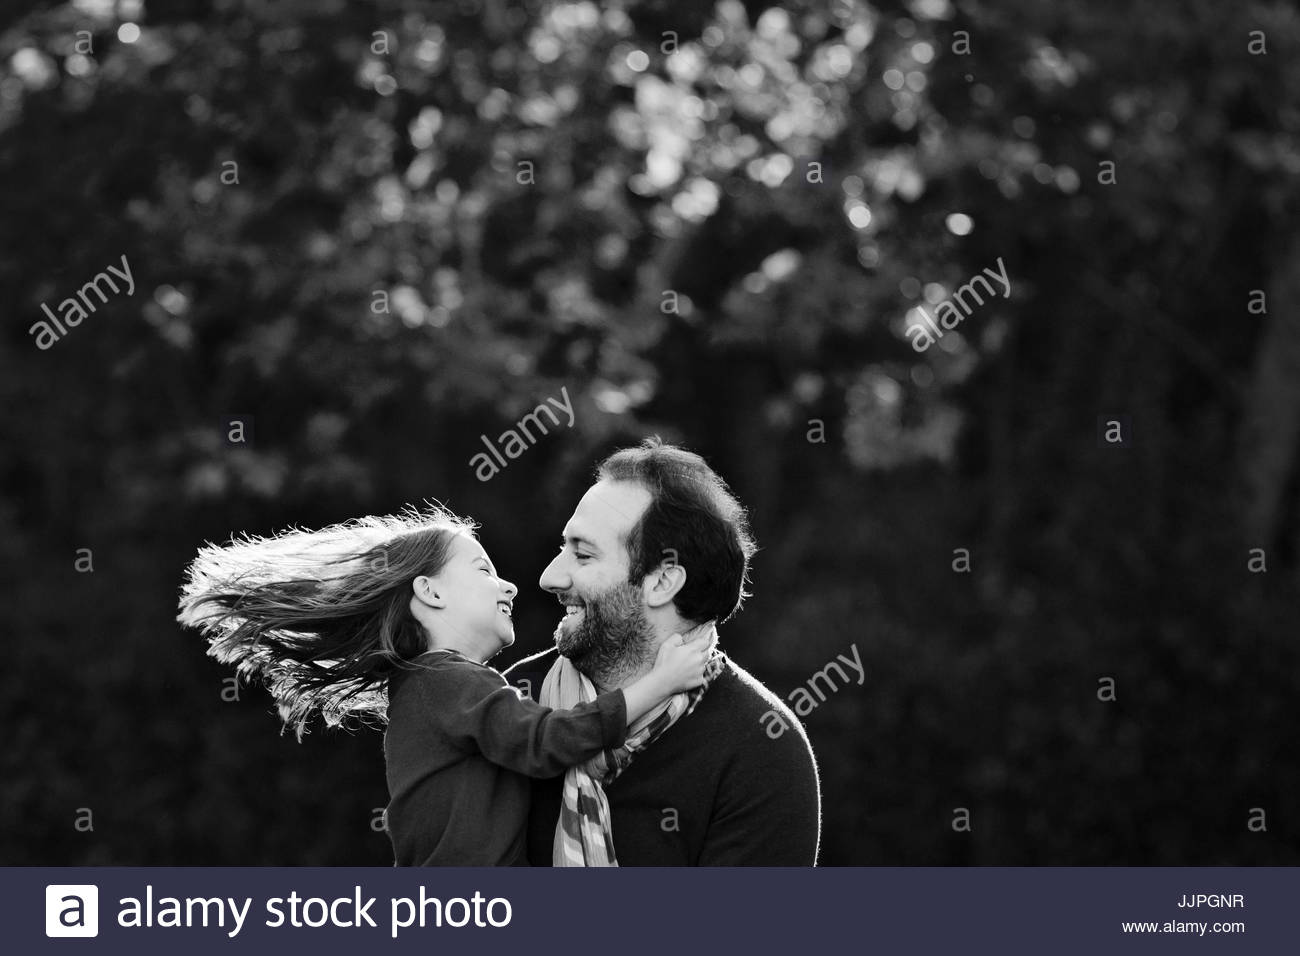 Smiling bearded man with girl in his arms, looking at each other, standing outdoors. - Stock Image